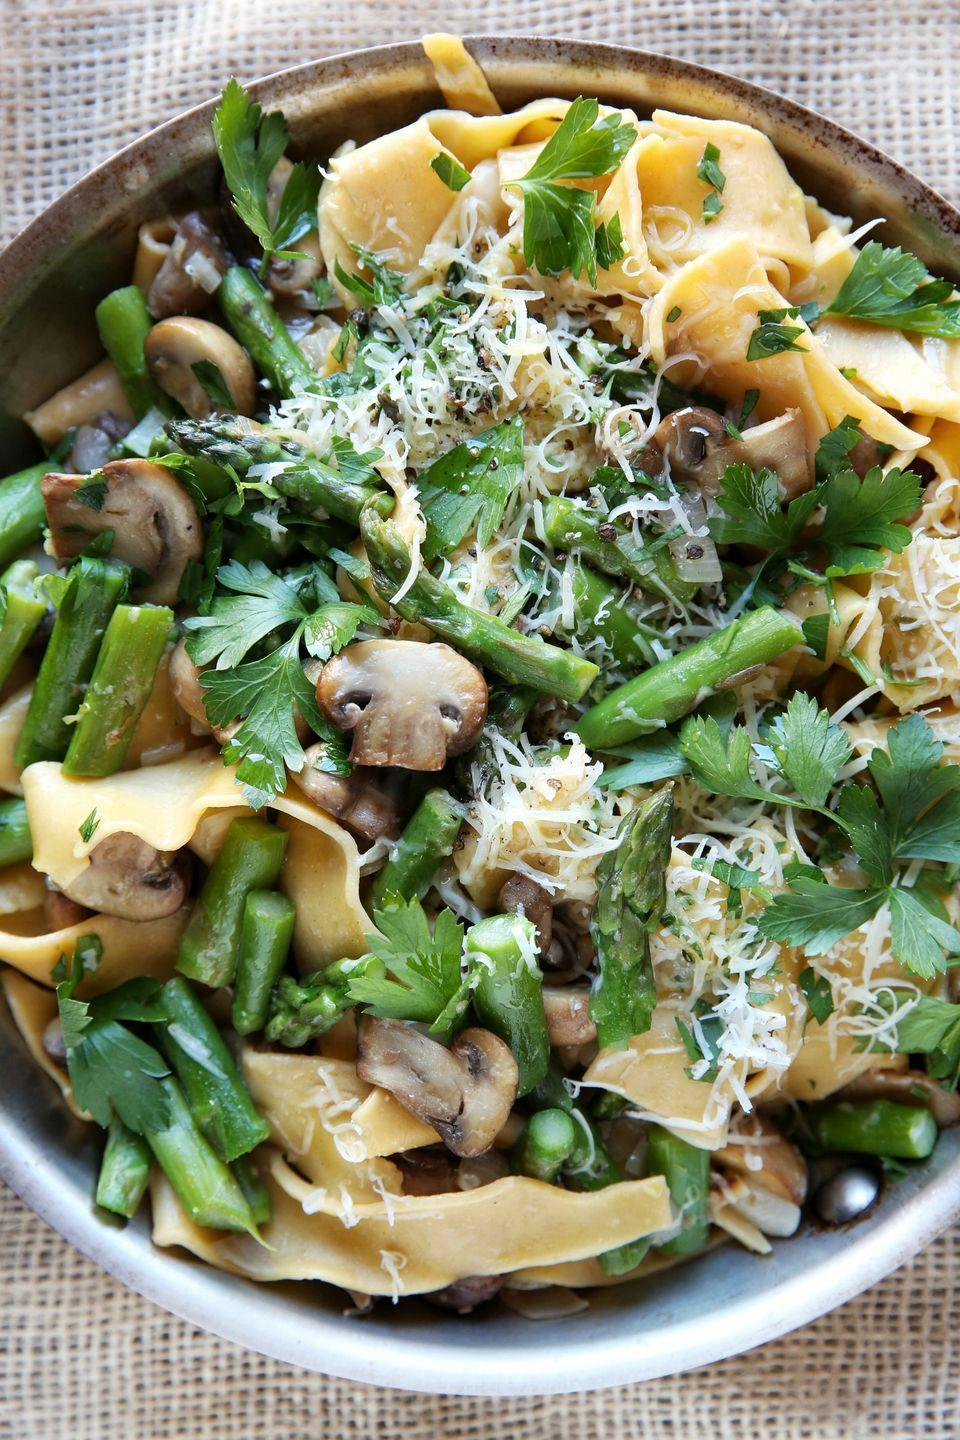 "<p>BRB, eating asparagus all season long.</p><p>Get the recipe from <a href=""https://www.delish.com/cooking/recipe-ideas/recipes/a46724/spring-asparagus-and-mushroom-papardelle-recipe/"" rel=""nofollow noopener"" target=""_blank"" data-ylk=""slk:Delish"" class=""link rapid-noclick-resp"">Delish</a>.</p>"